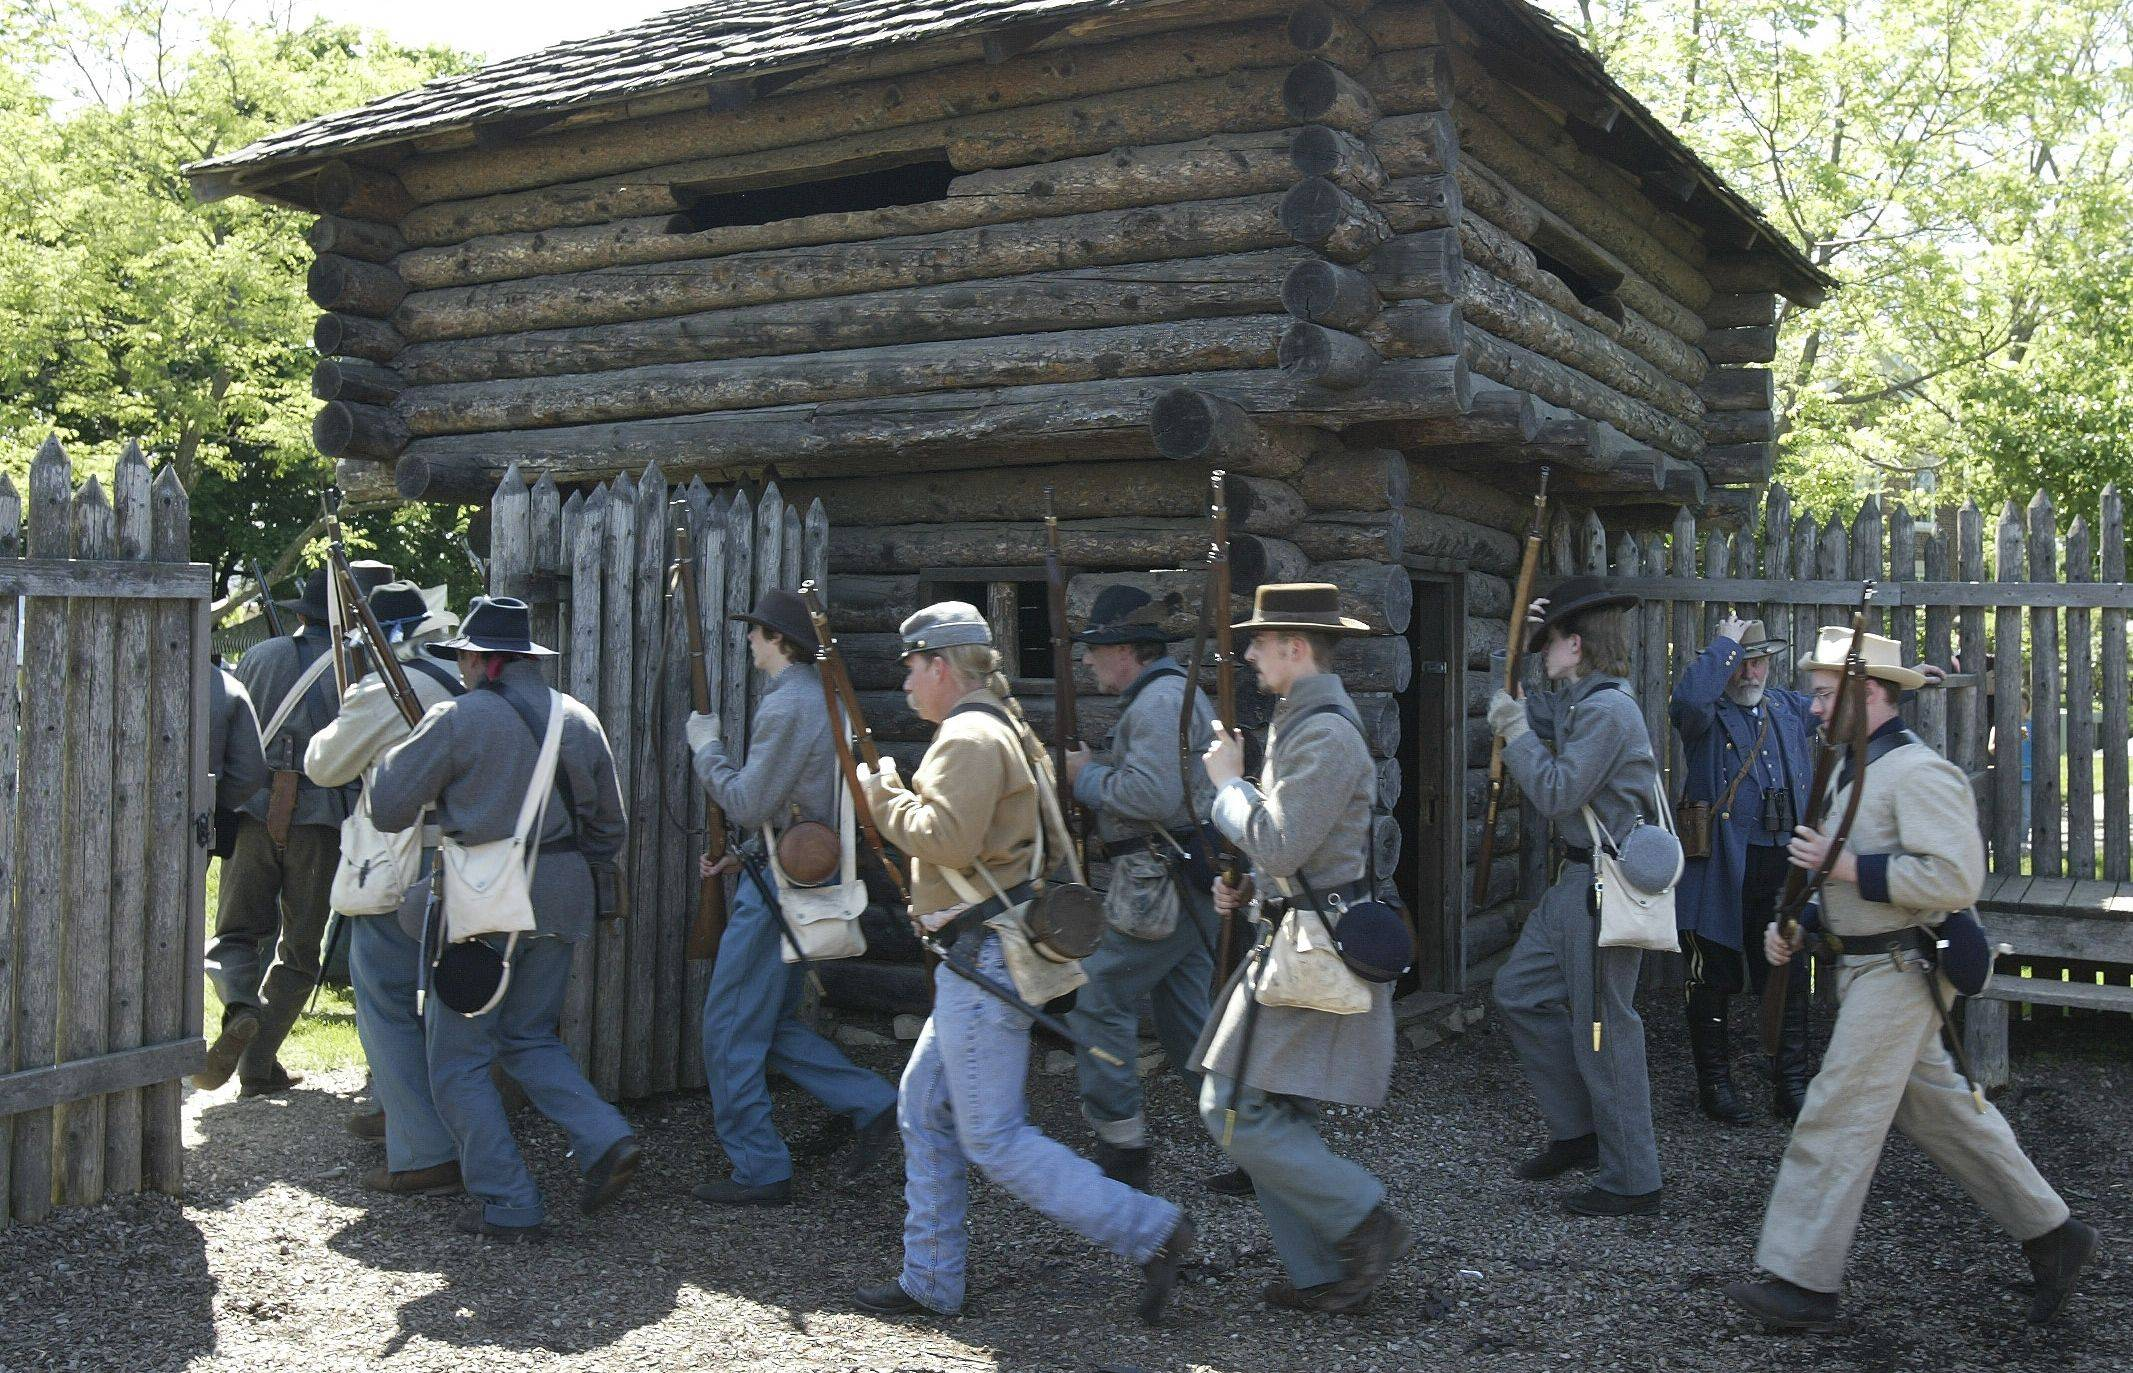 Civil War re-enactors make use of Fort Payne during Civil War Days at Naper Settlement. The museum village will host an overnight program for middle school students at the fort this summer to help commemorate the 150th anniversary of the start of the war.